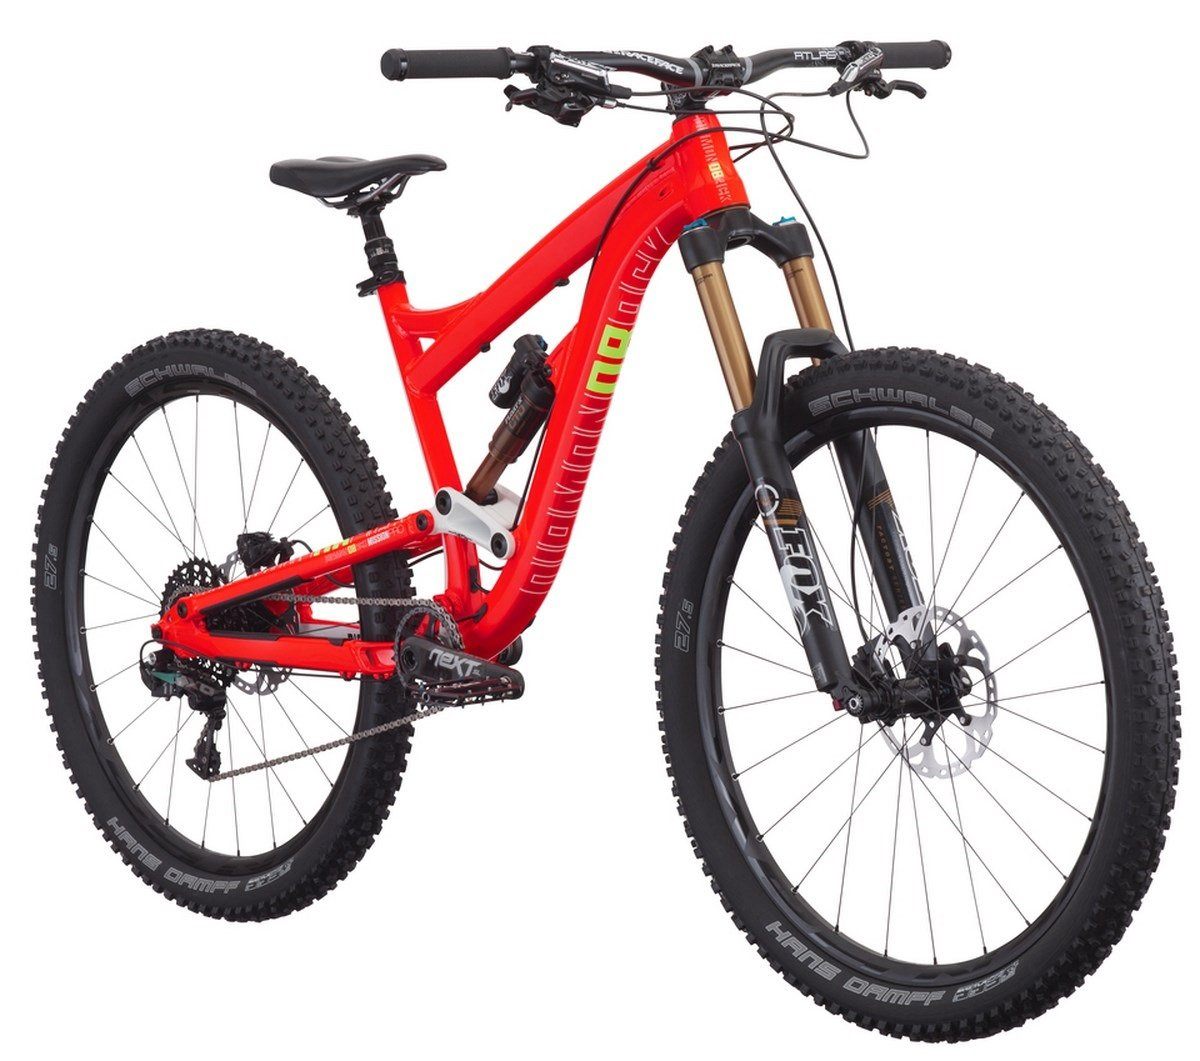 DiamondBack Mission Pro - Bicicleta de enduro, color rojo, 15